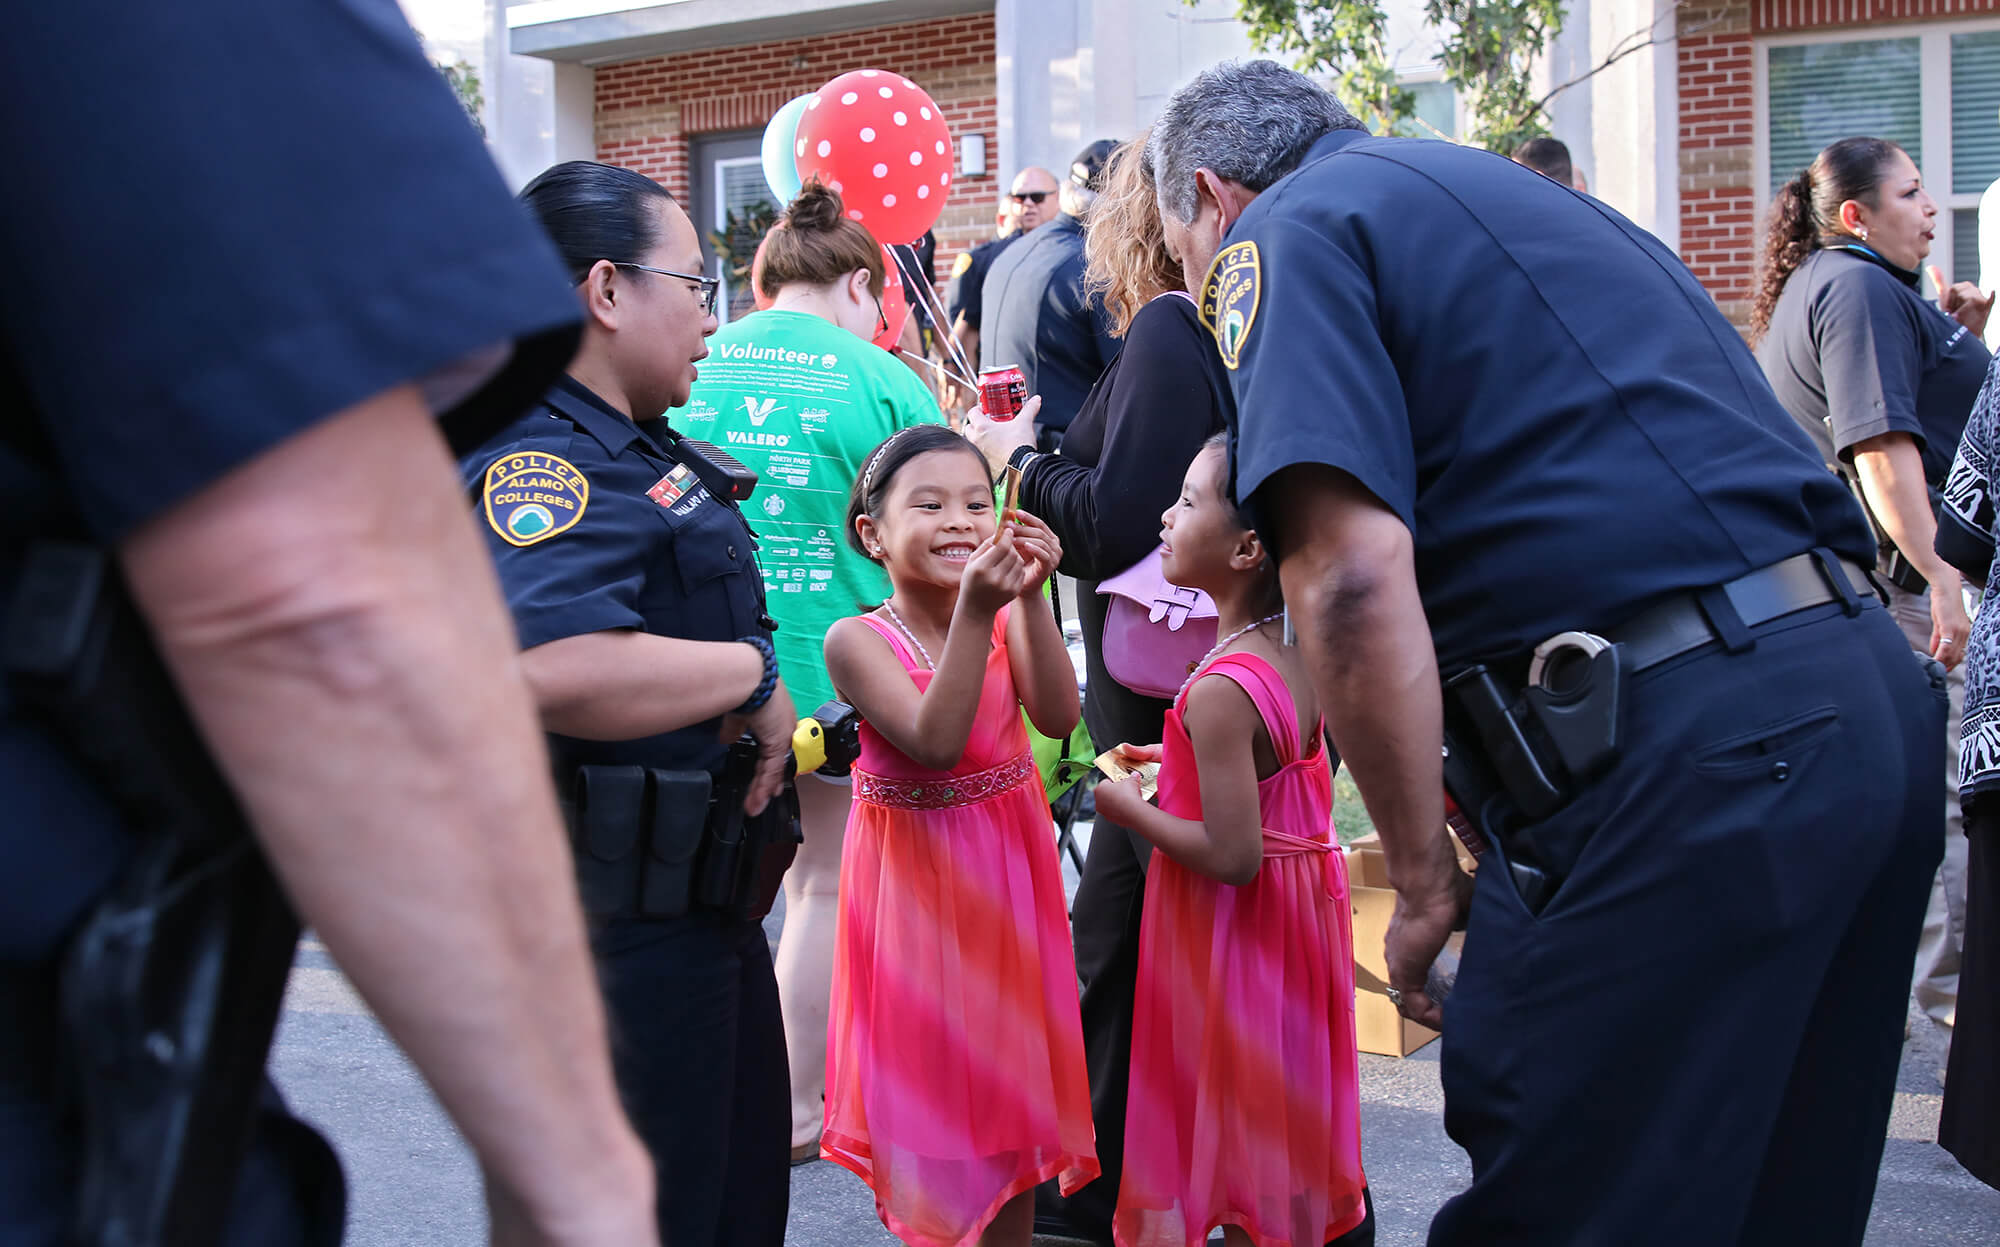 Faith and Hope Calma, daughters of Alamo Colleges officer Merasol Malapo, left, admire a badge sticker with Deputy Chief Joe Curiel Oct. 6, 2015, during this college's first National Night Out hosted by the Alamo Colleges' police department on West Evergreen and North Main Ave. About 250 people partook in free soda, water, burgers and sausage wraps provided by Luther's Cafe and Alamo Colleges officers. File